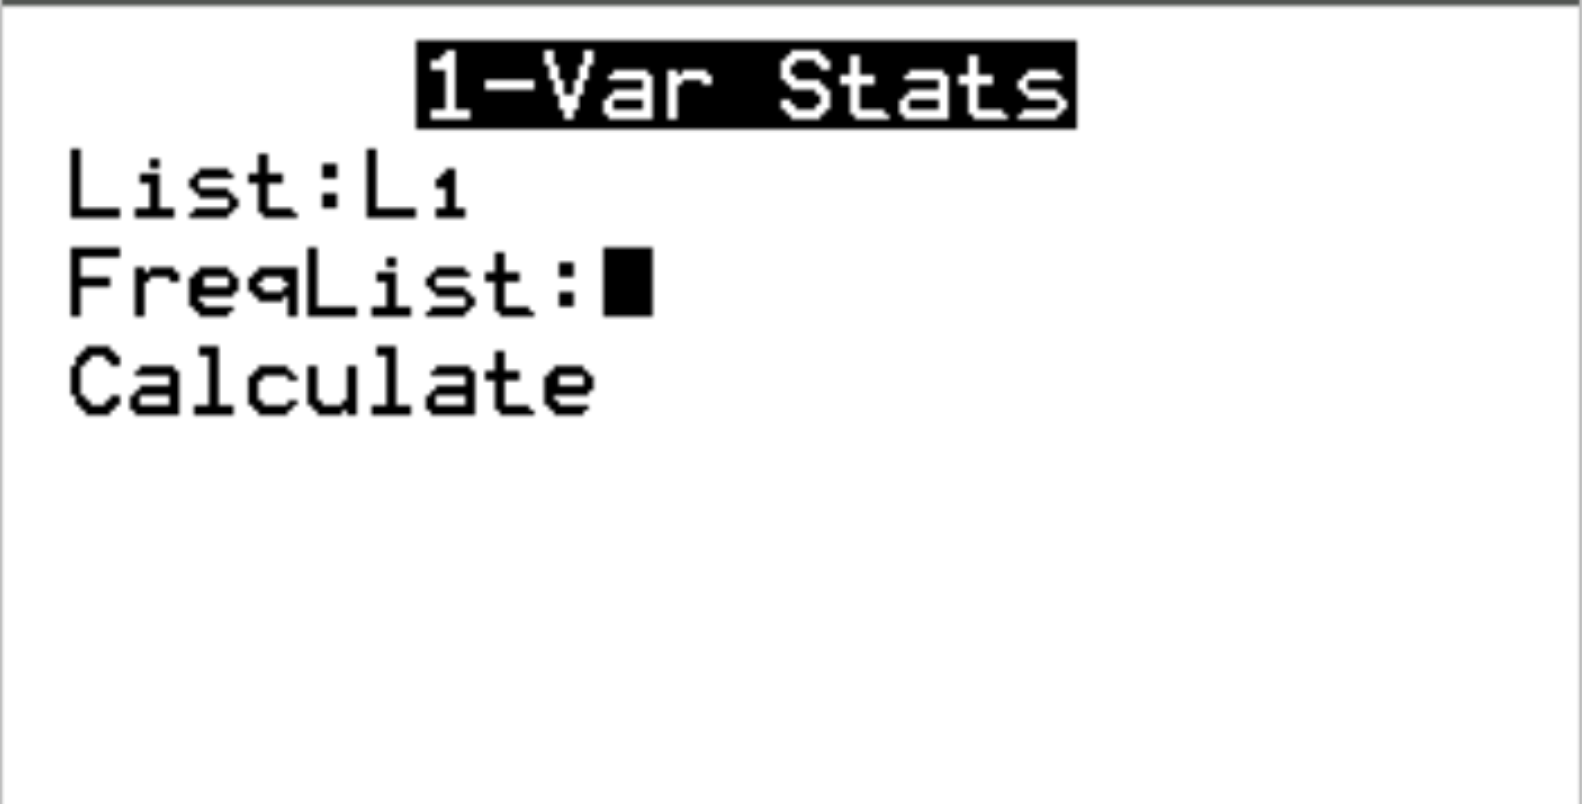 1-Var stats on TI-84 calculator